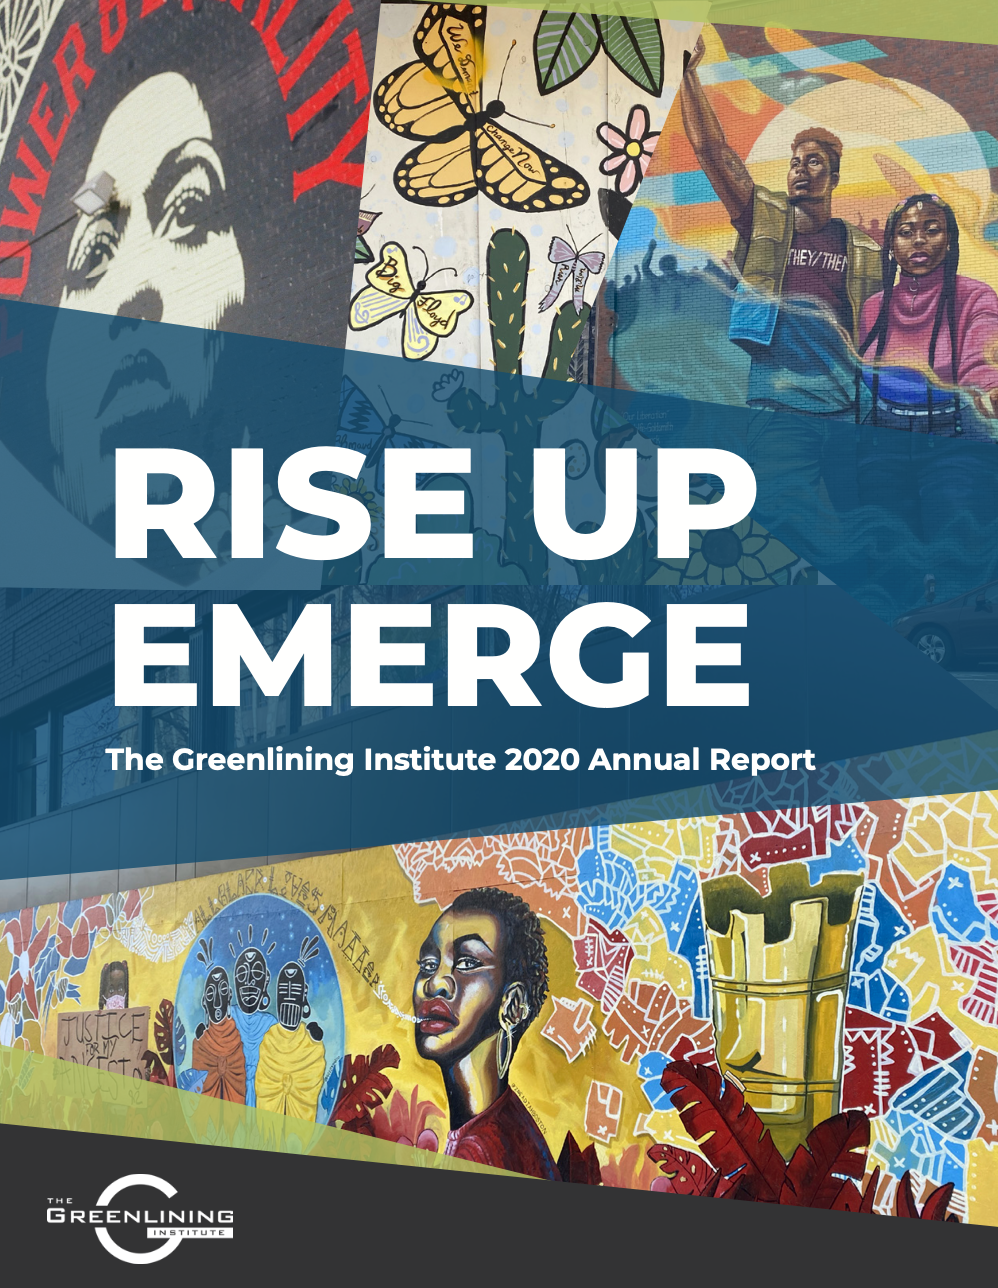 """""""Greenlining's 2020 Annual Report reviews a year of pain and hardship, but also groundbreaking strides flowing from years of working for racial justice. """""""